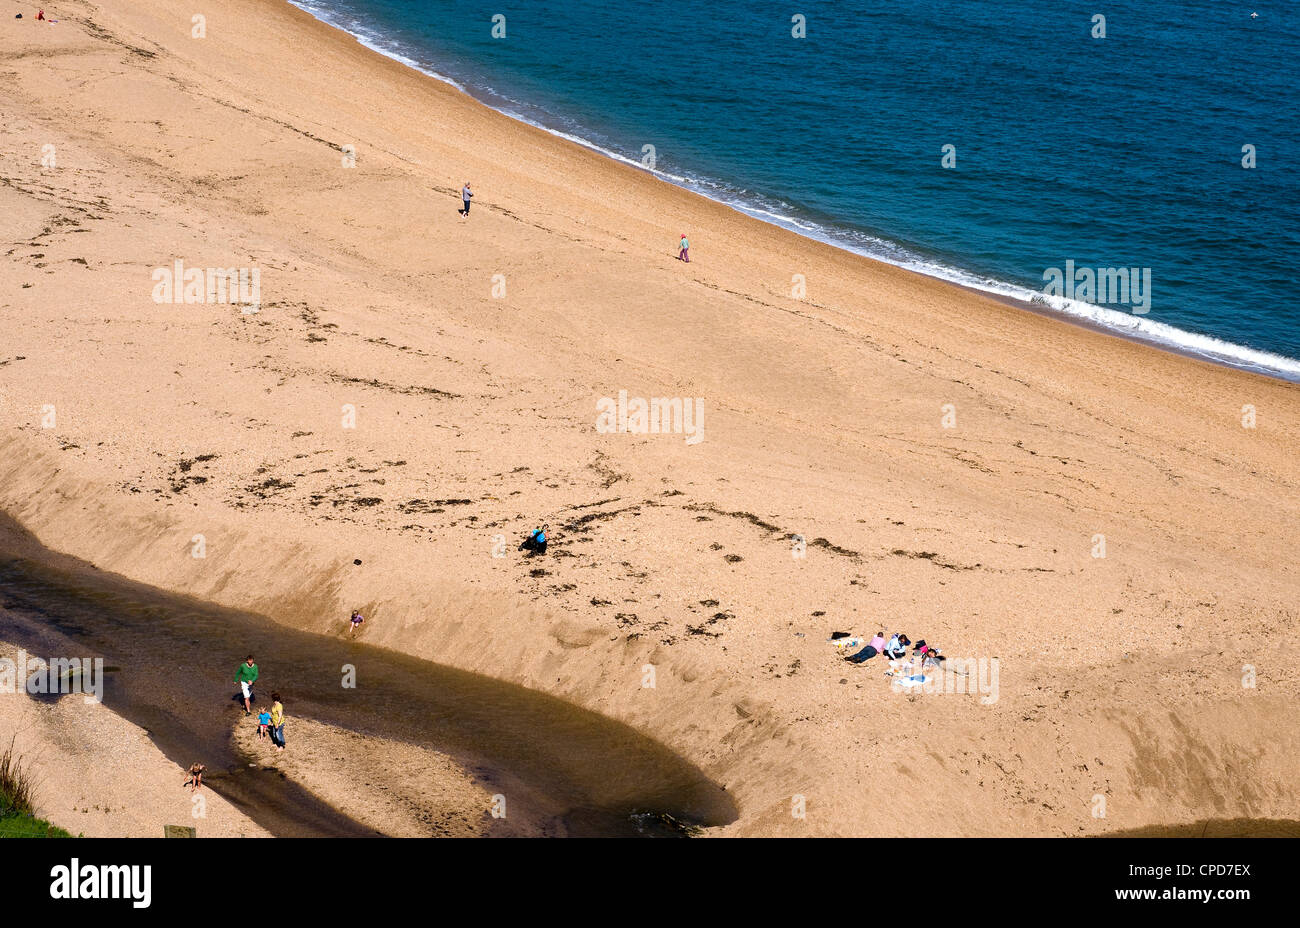 blackpool sands, Bay,South Hams,Devon, bay, boat, britain, british, coast, coastal, The Battle of Blackpool Sands - Stock Image